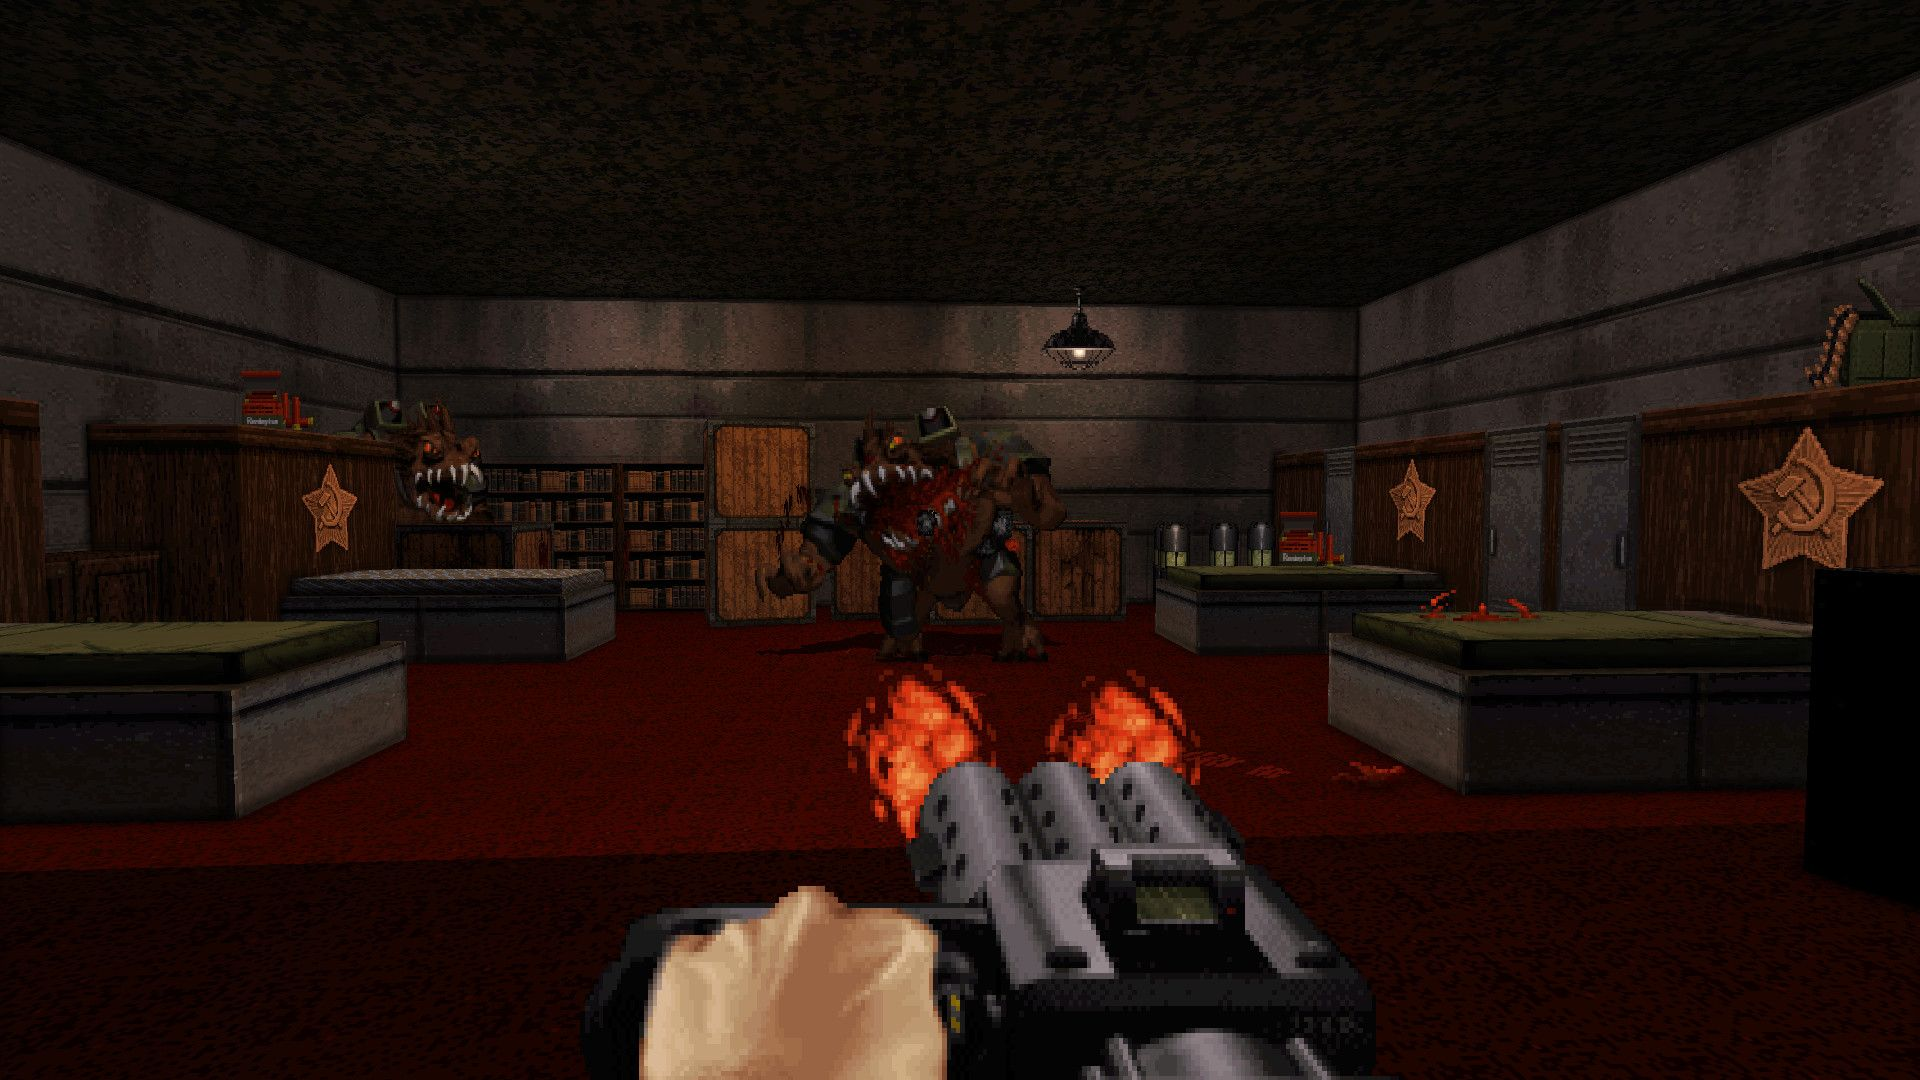 Download 3d Video Wallpaper For Pc Game Cheats Duke Nukem 3d 20th Anniversary World Tour